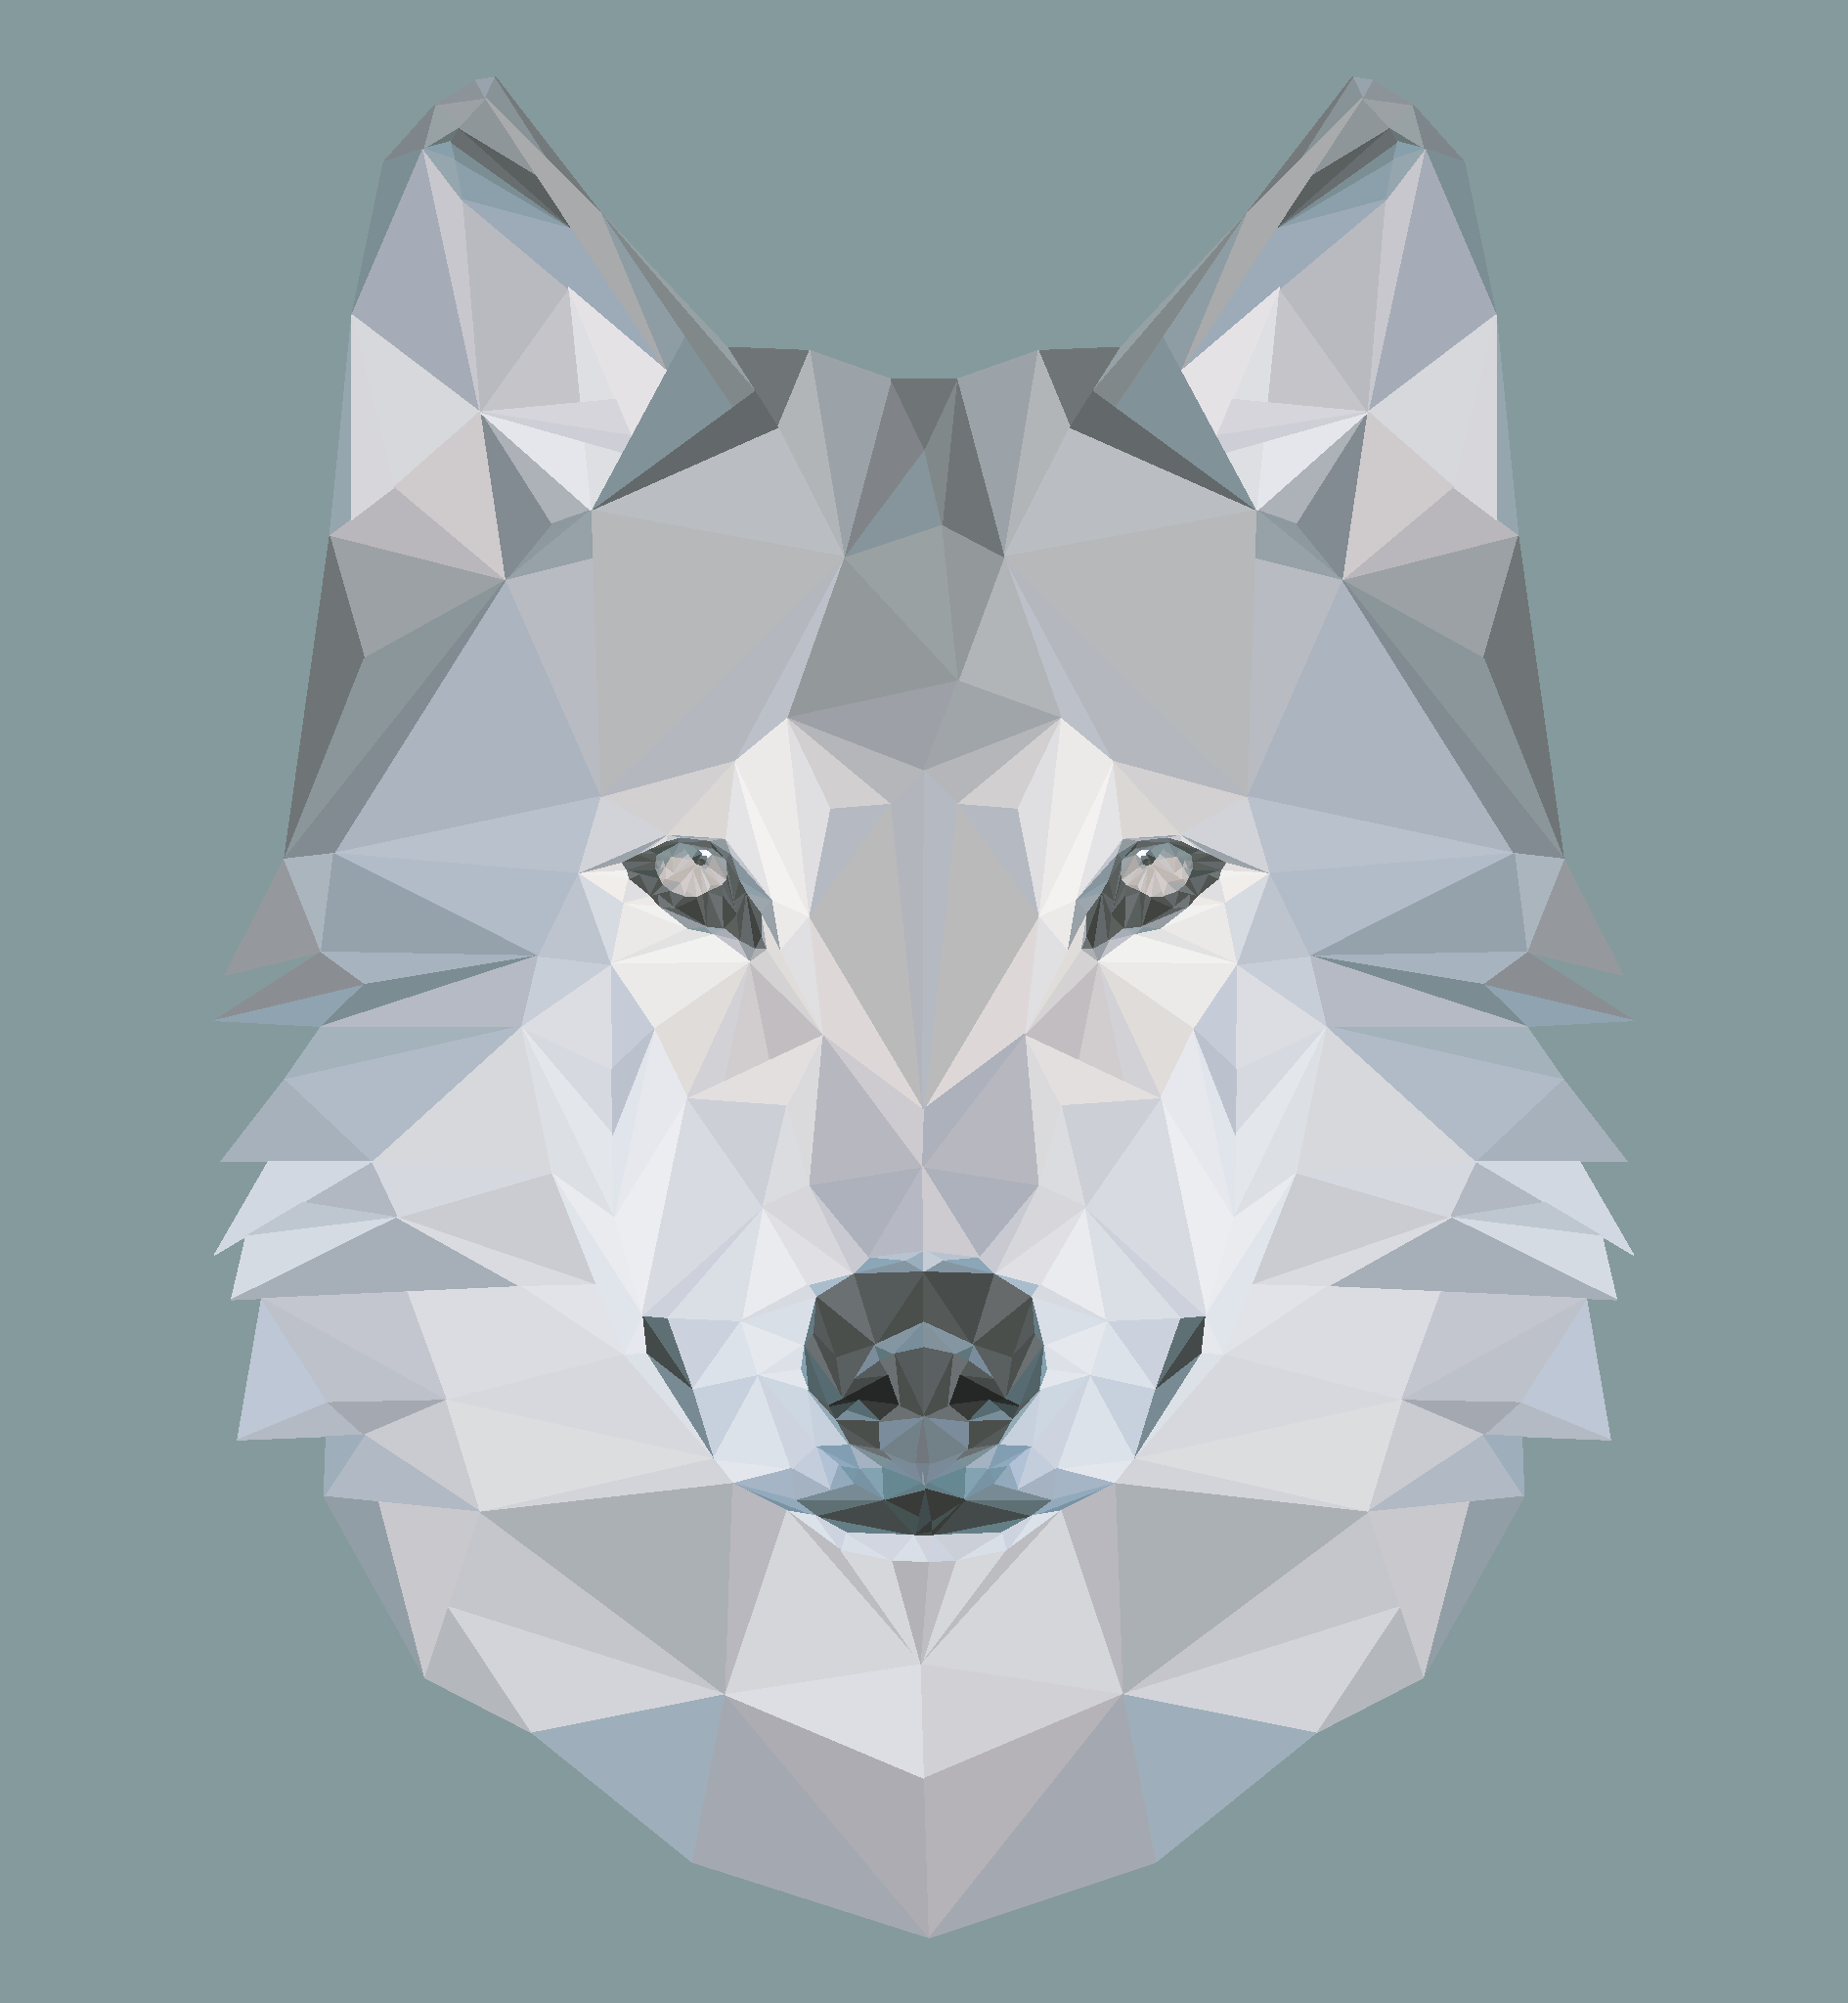 Favorit Low Poly Art: Wolf by zelda-Freak91 on DeviantArt BN82